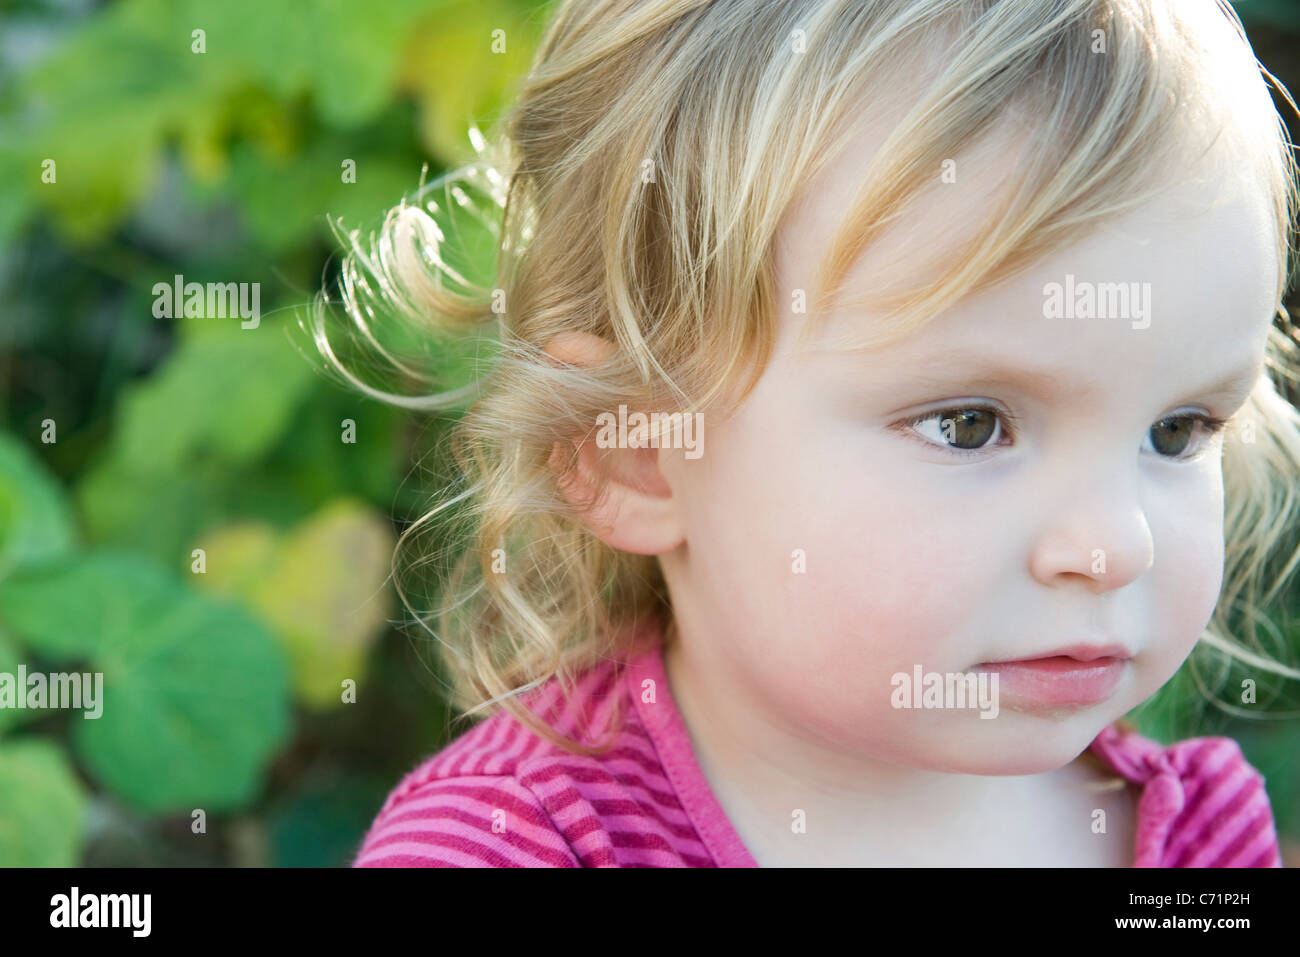 Toddler girl looking away in thought, portrait - Stock Image